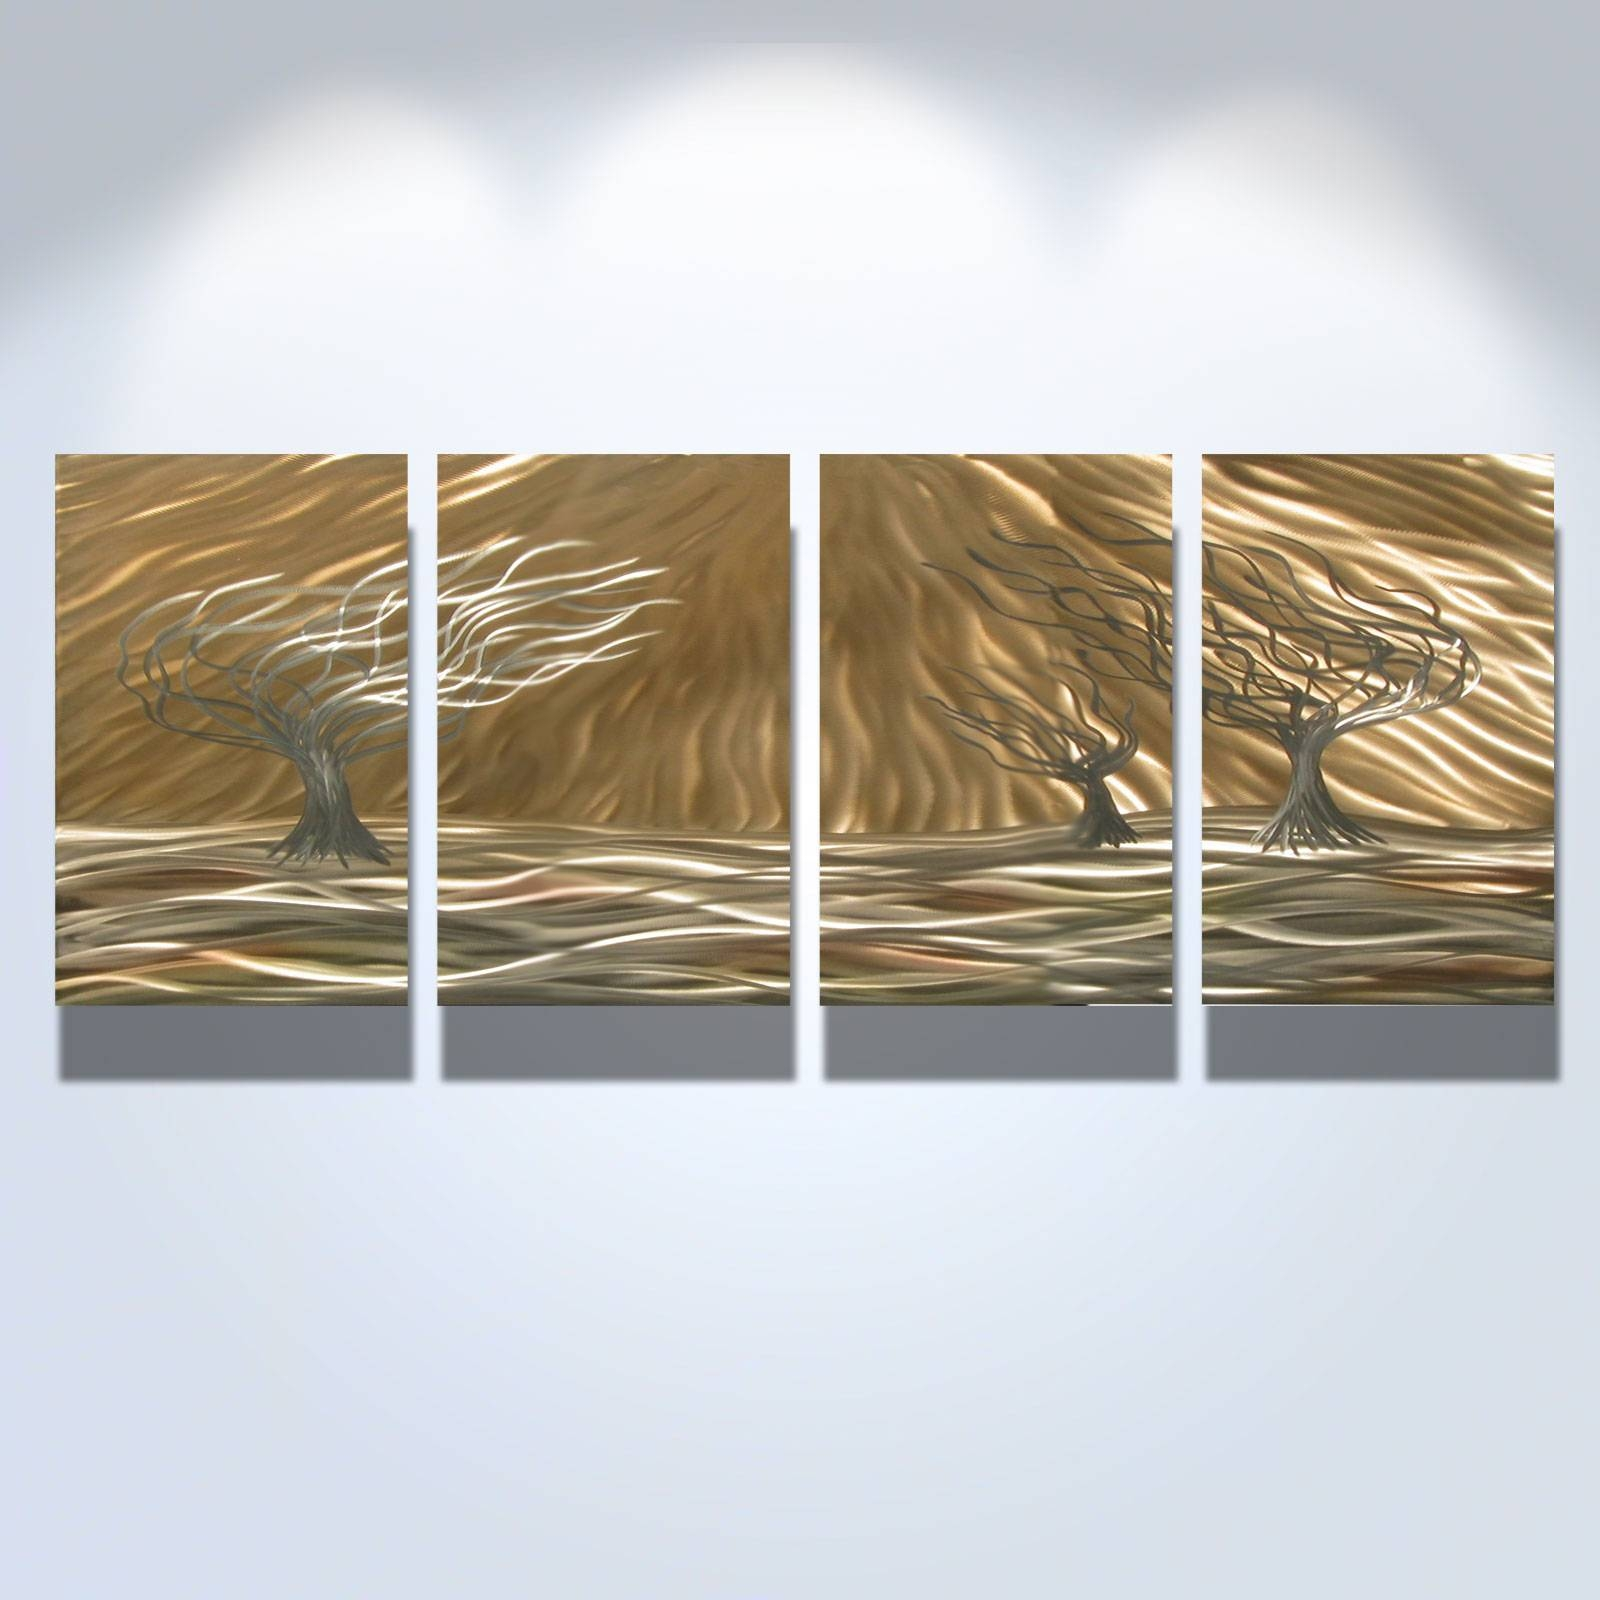 3 Trees 4 Panel – Abstract Metal Wall Art Contemporary Modern In Most Popular Modern Abstract Metal Wall Art (Gallery 9 of 20)